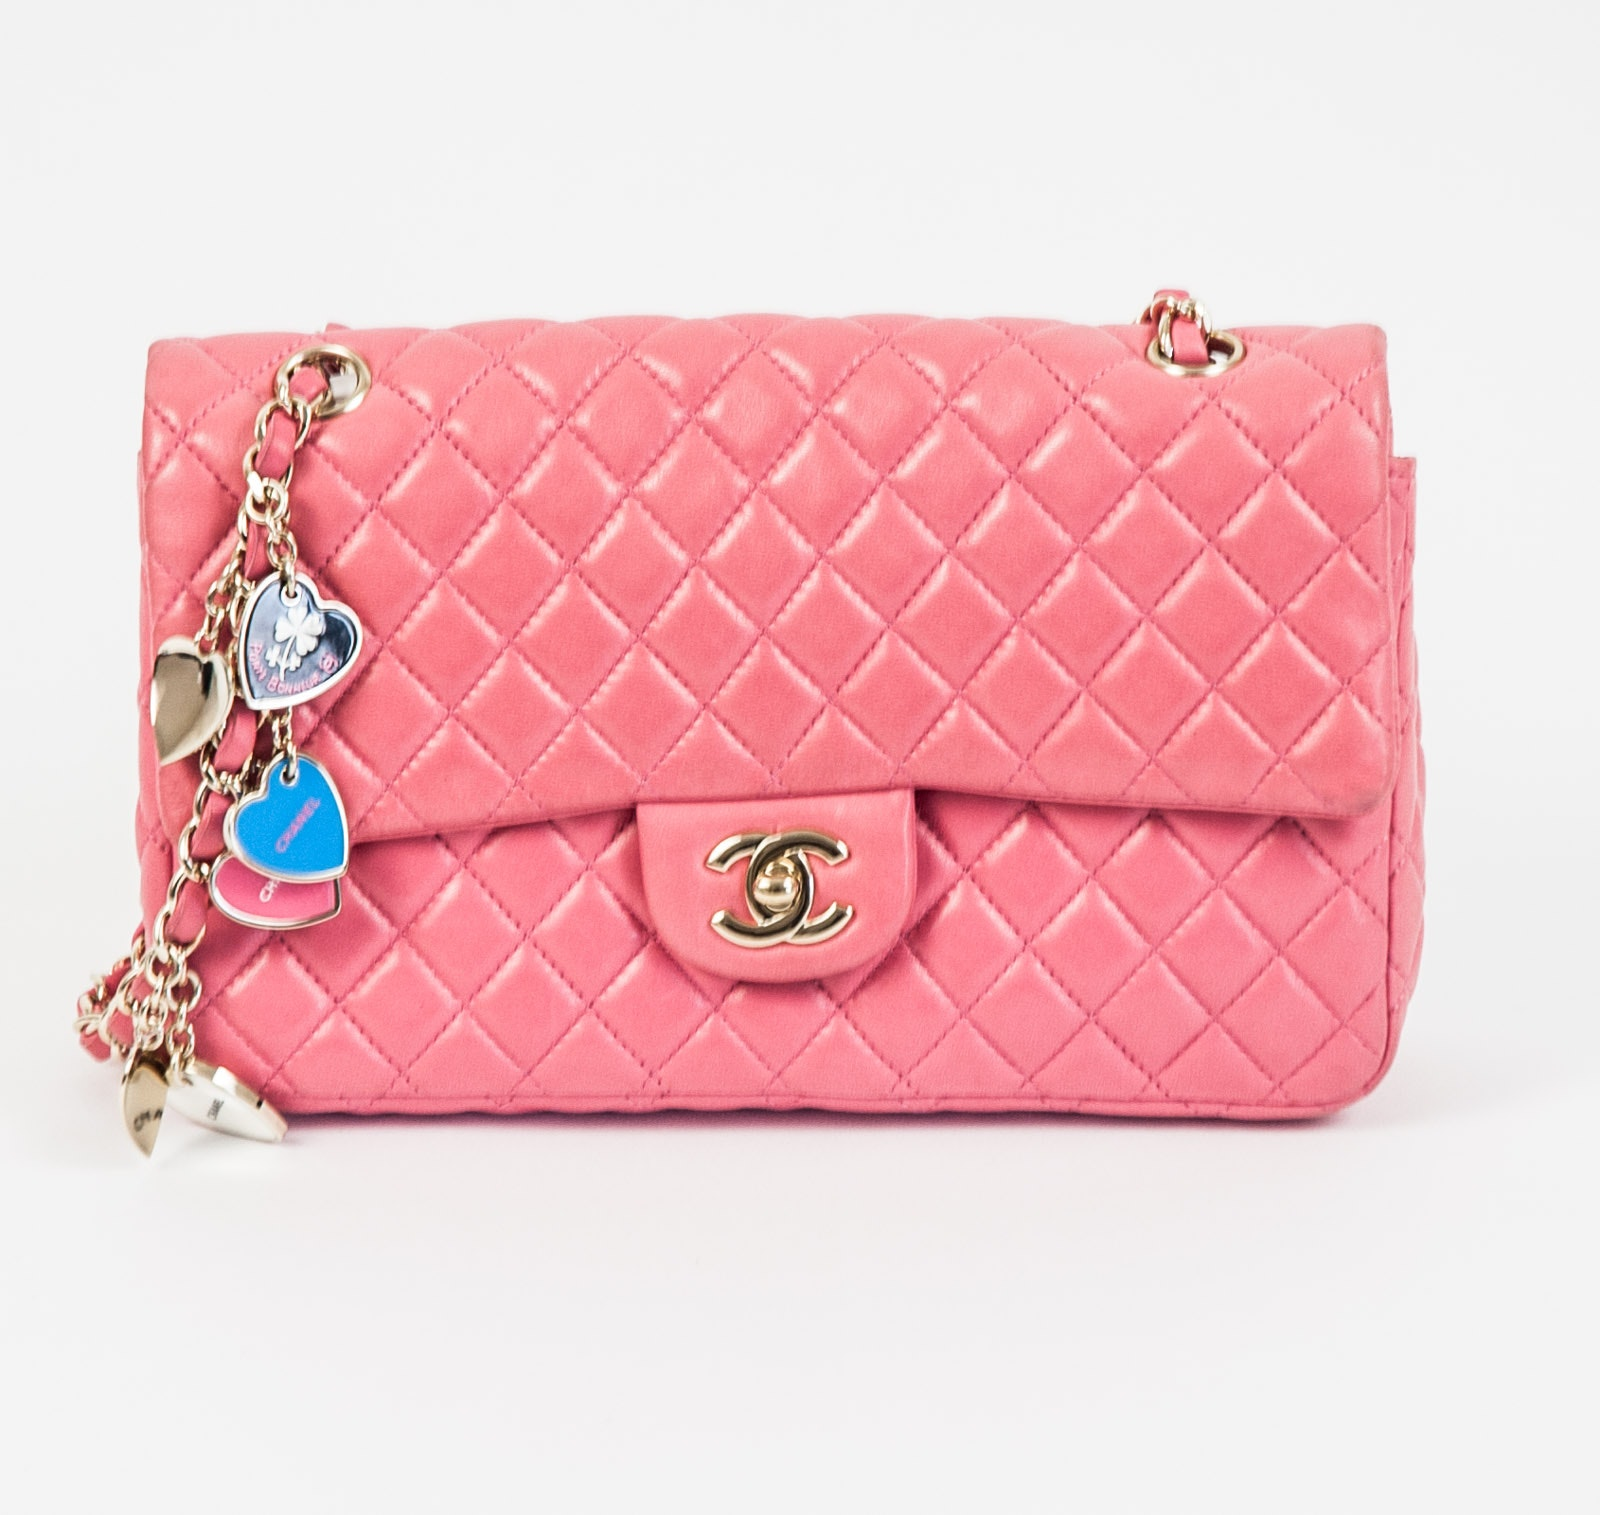 Chanel Pink Lambskin Valentine Charms Flap Bag